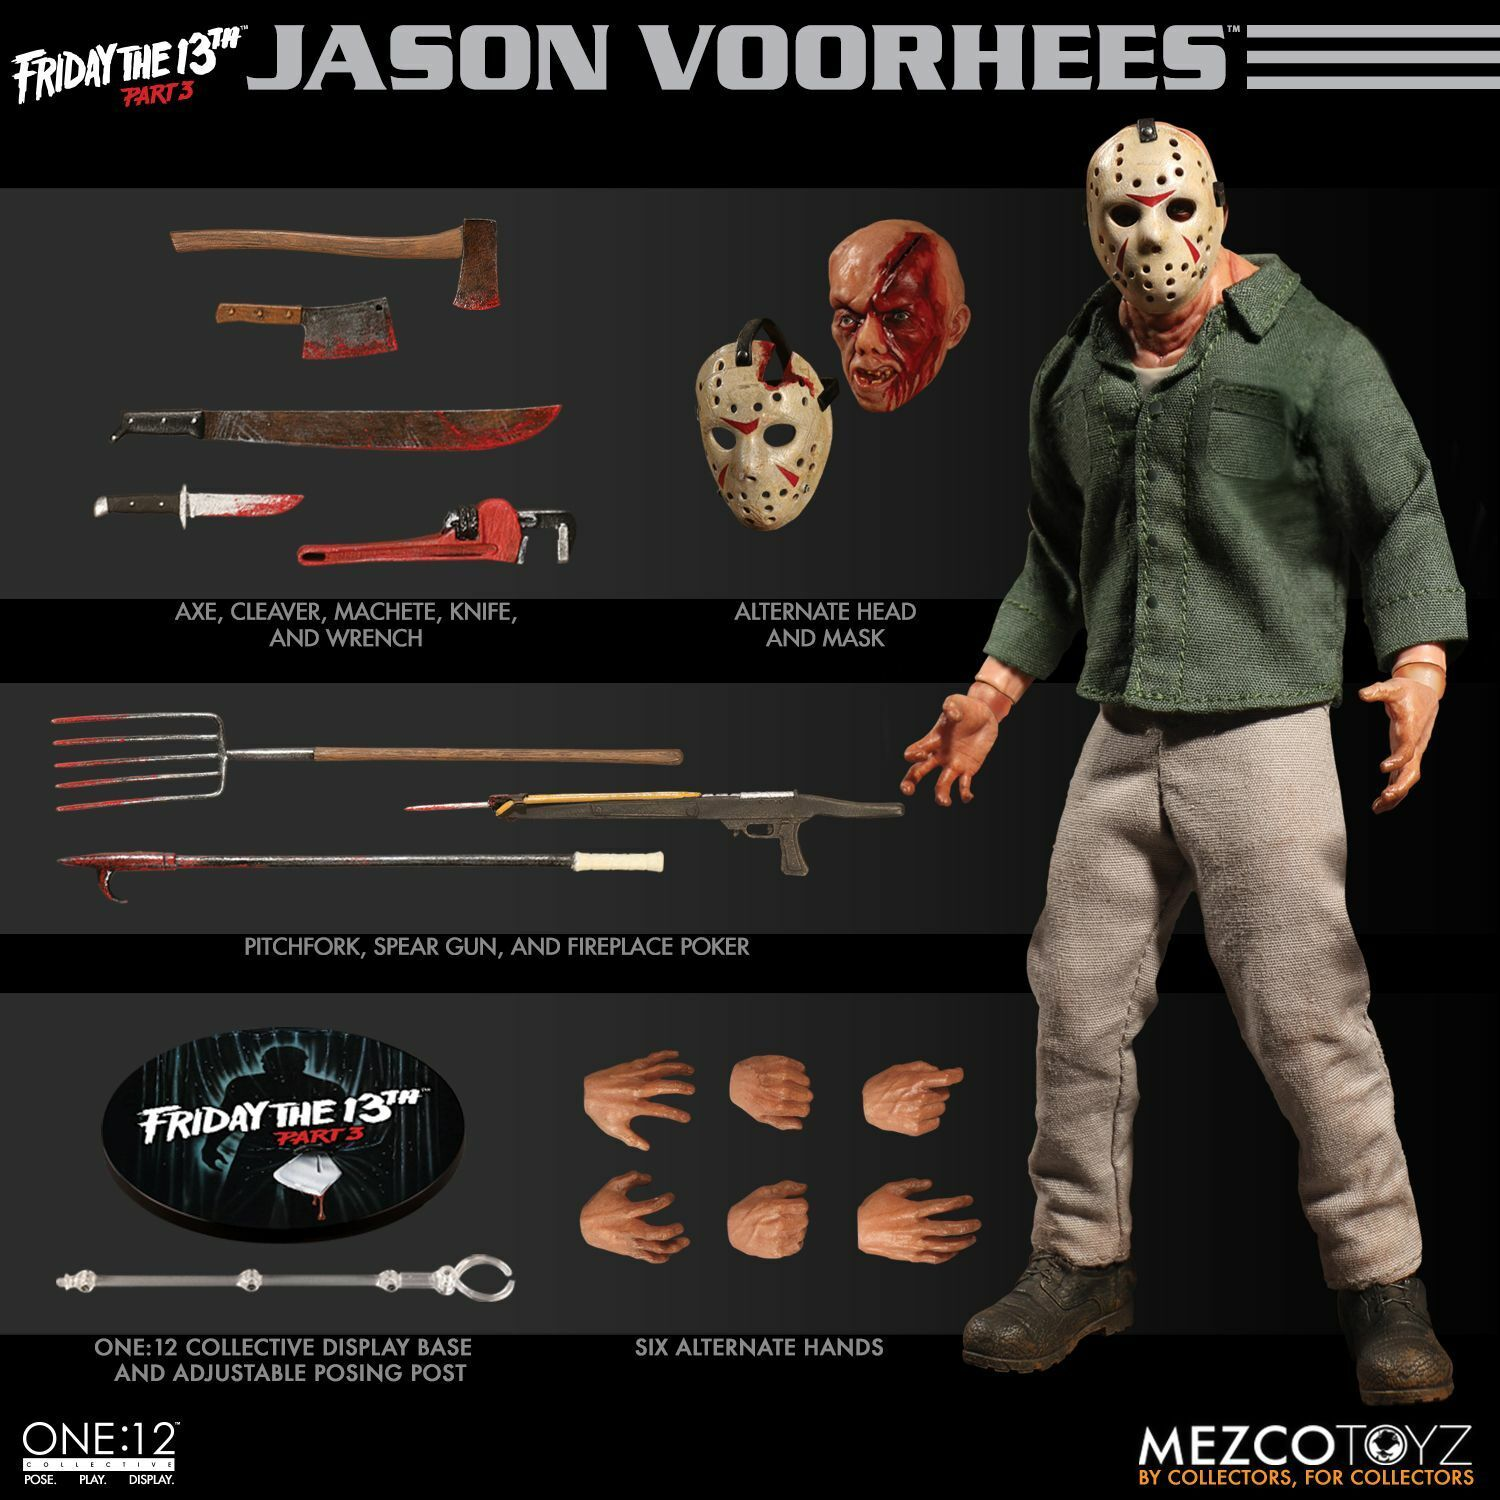 One 12 13th venerdì COLLETTIVO PARTE 3 Jason Voorhees  1 12th SCALA cifra Mezco  vendite online